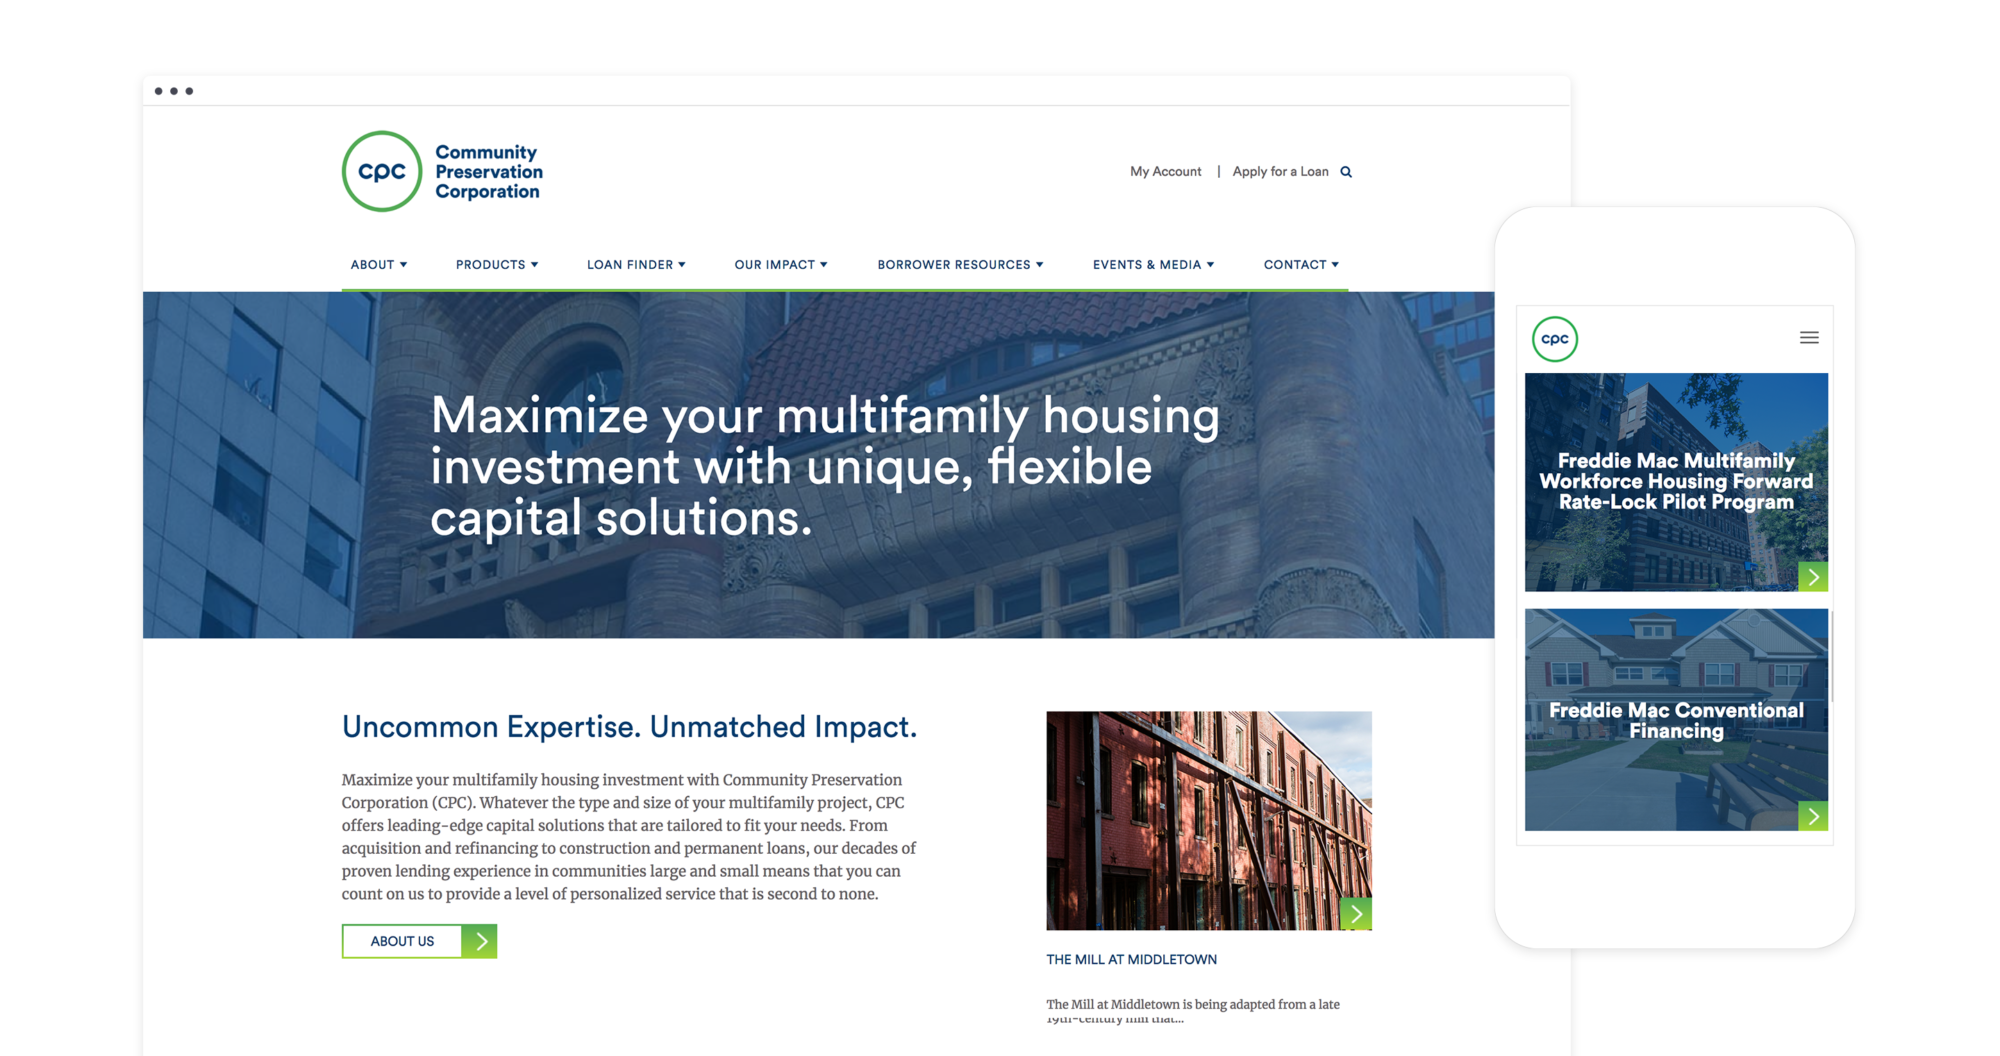 Mock up of responsive desktop and mobile design for CPC's new corporate website